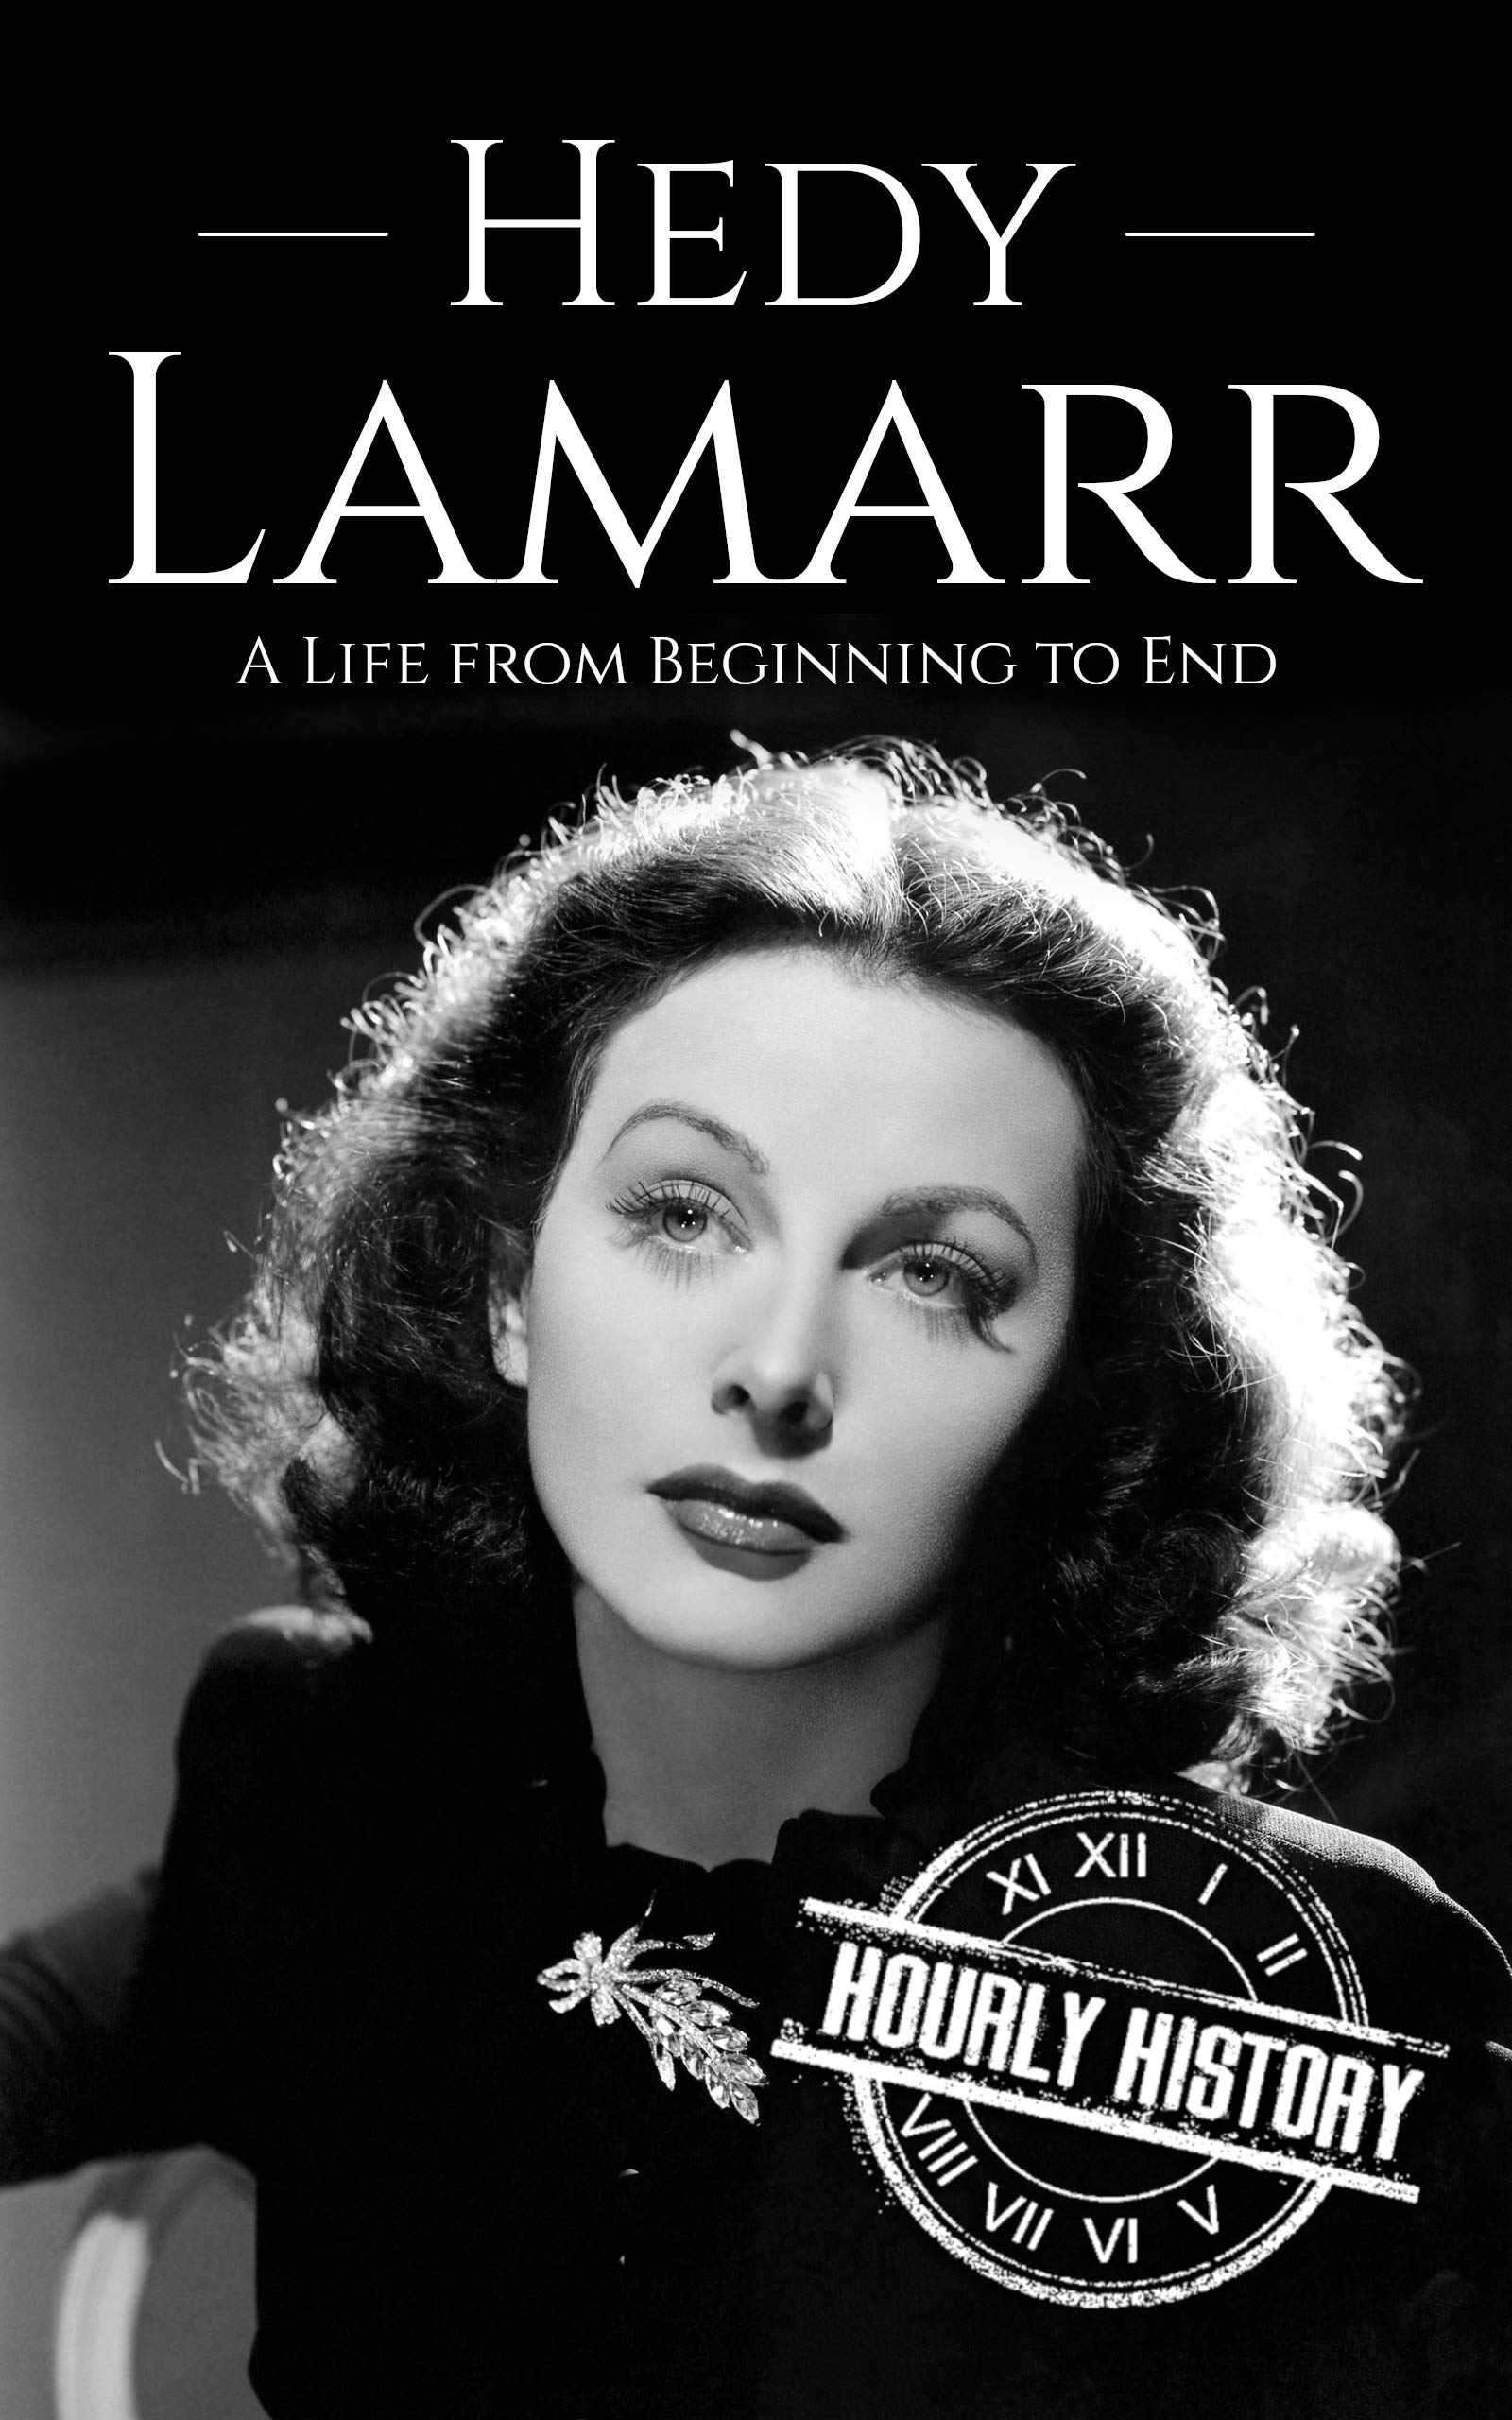 Hedy Lamarr: A Life from Beginning to End